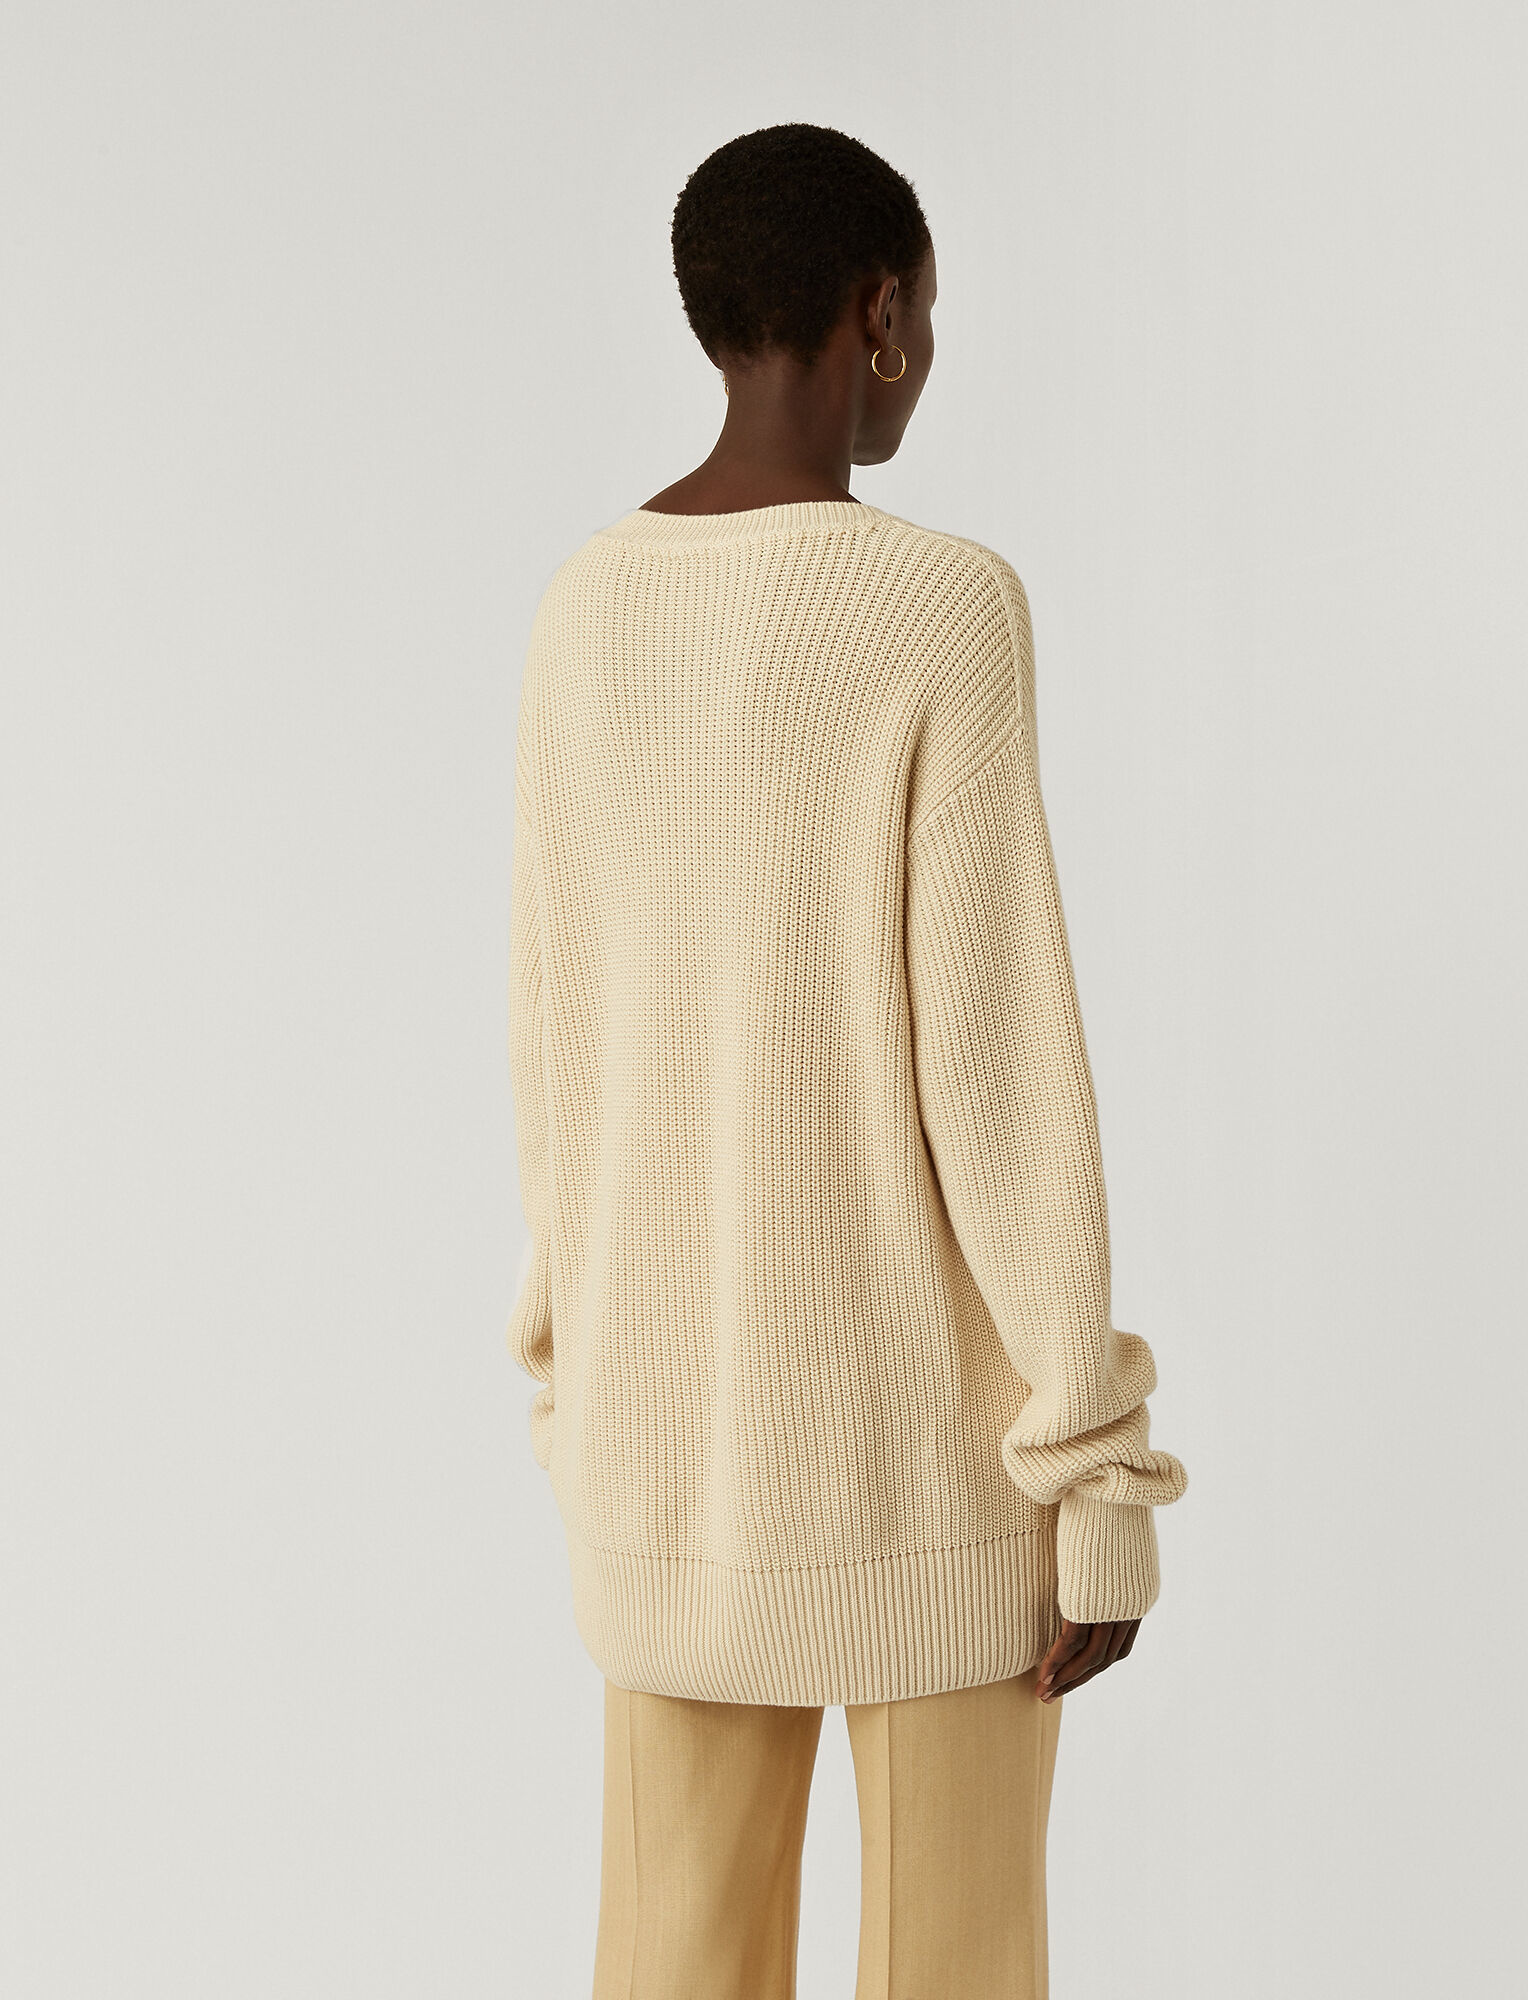 Rd Nk Ls Egyptian Cotton Ivory